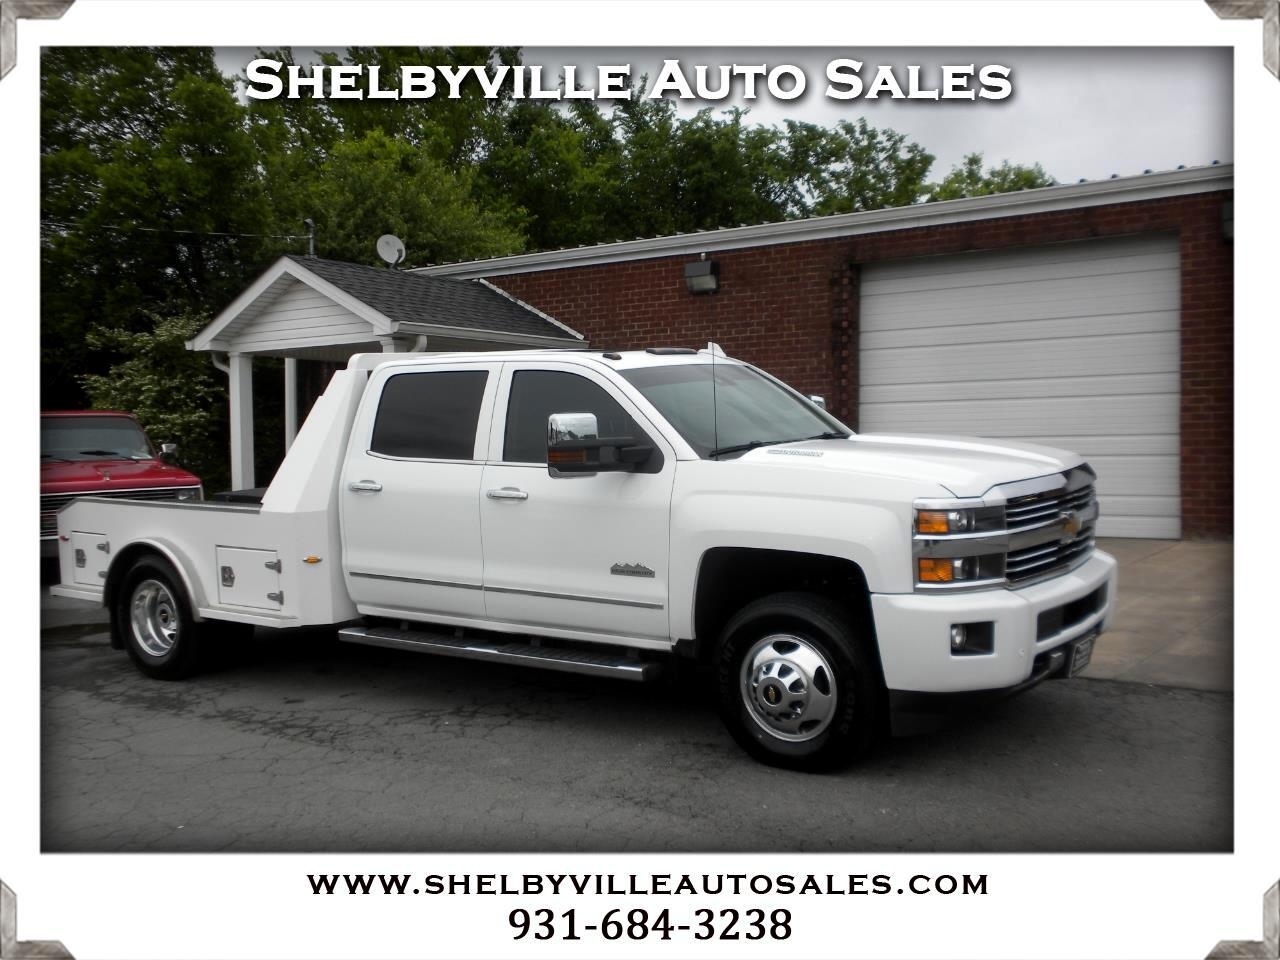 "2015 Chevrolet Silverado 3500HD 4WD Crew Cab 167.7"" High Country"